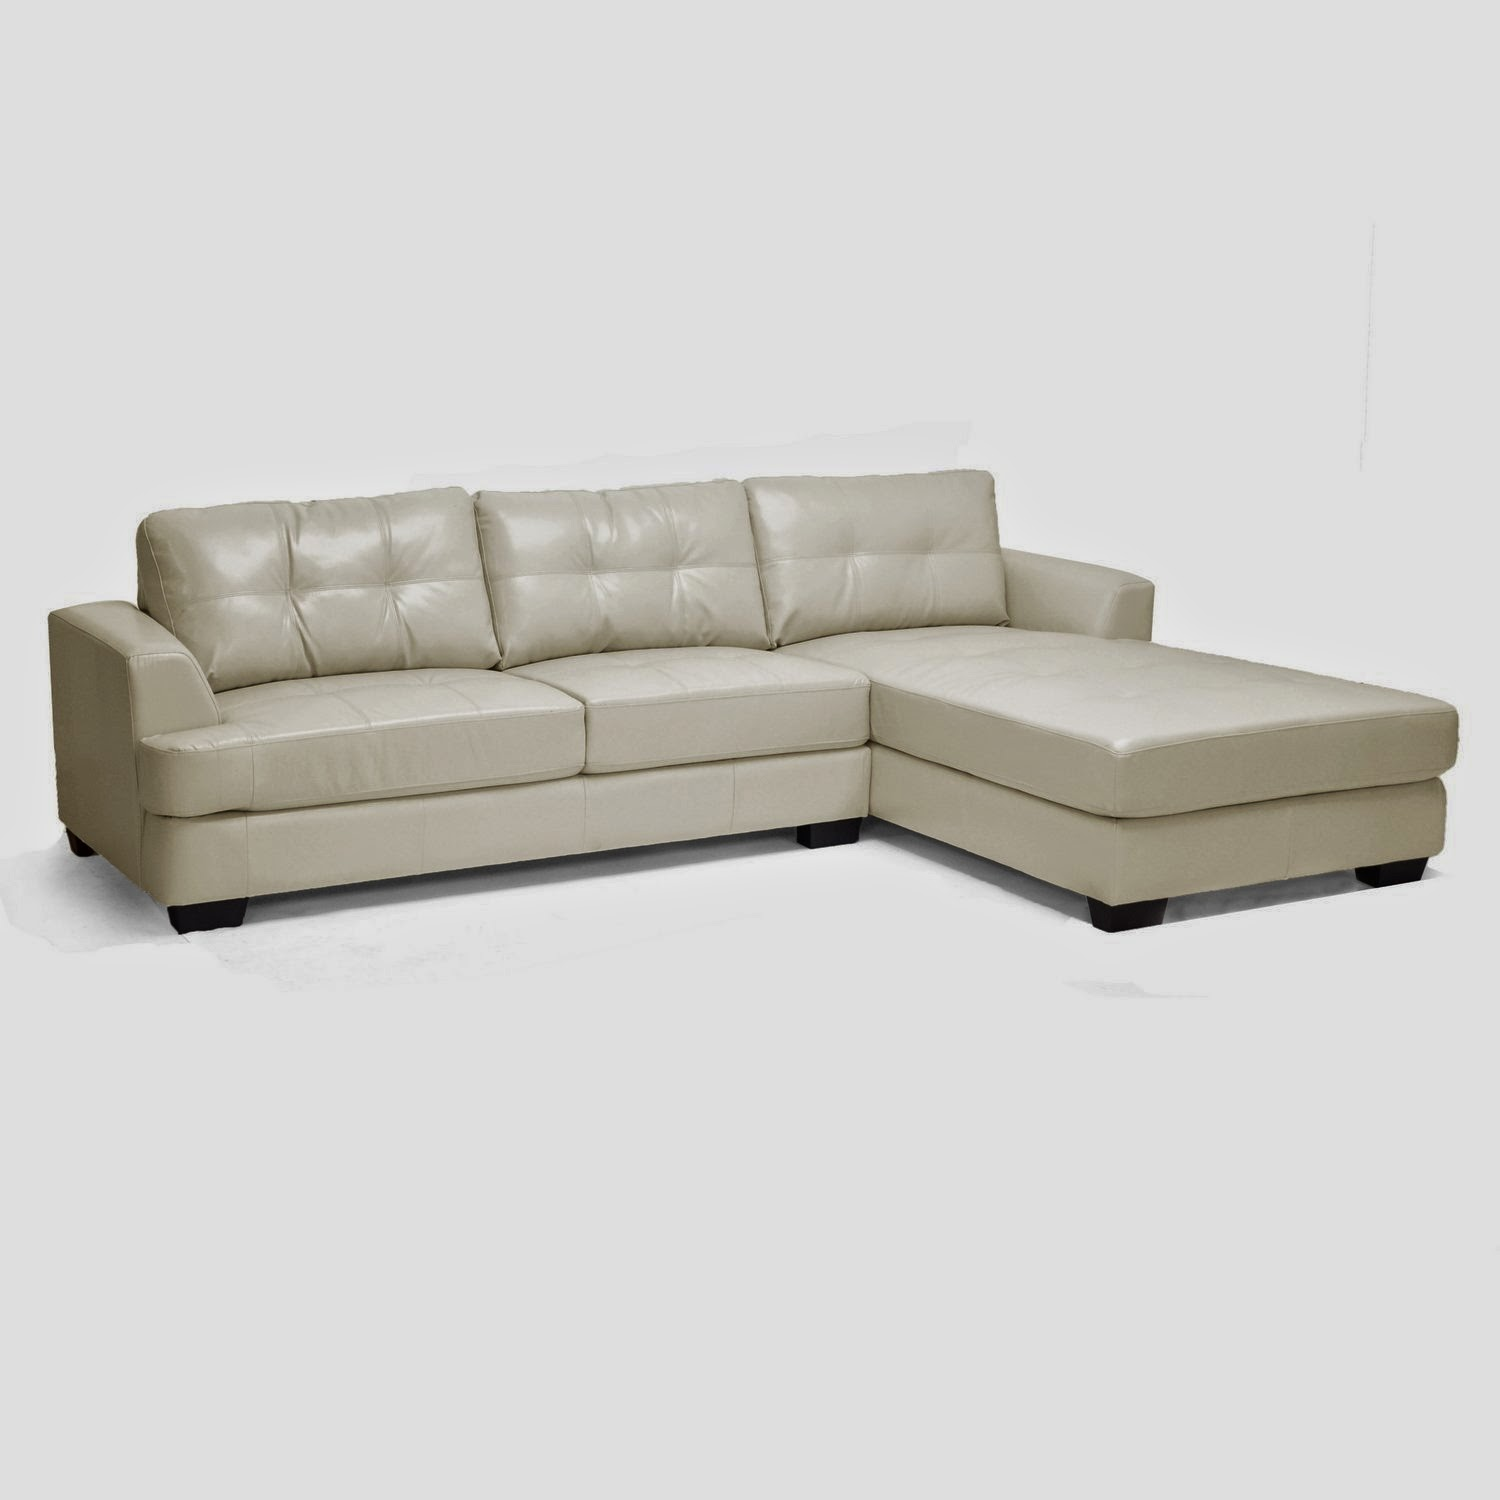 Couch with chaise leather couch with chaise lounge for Chaise leather lounges